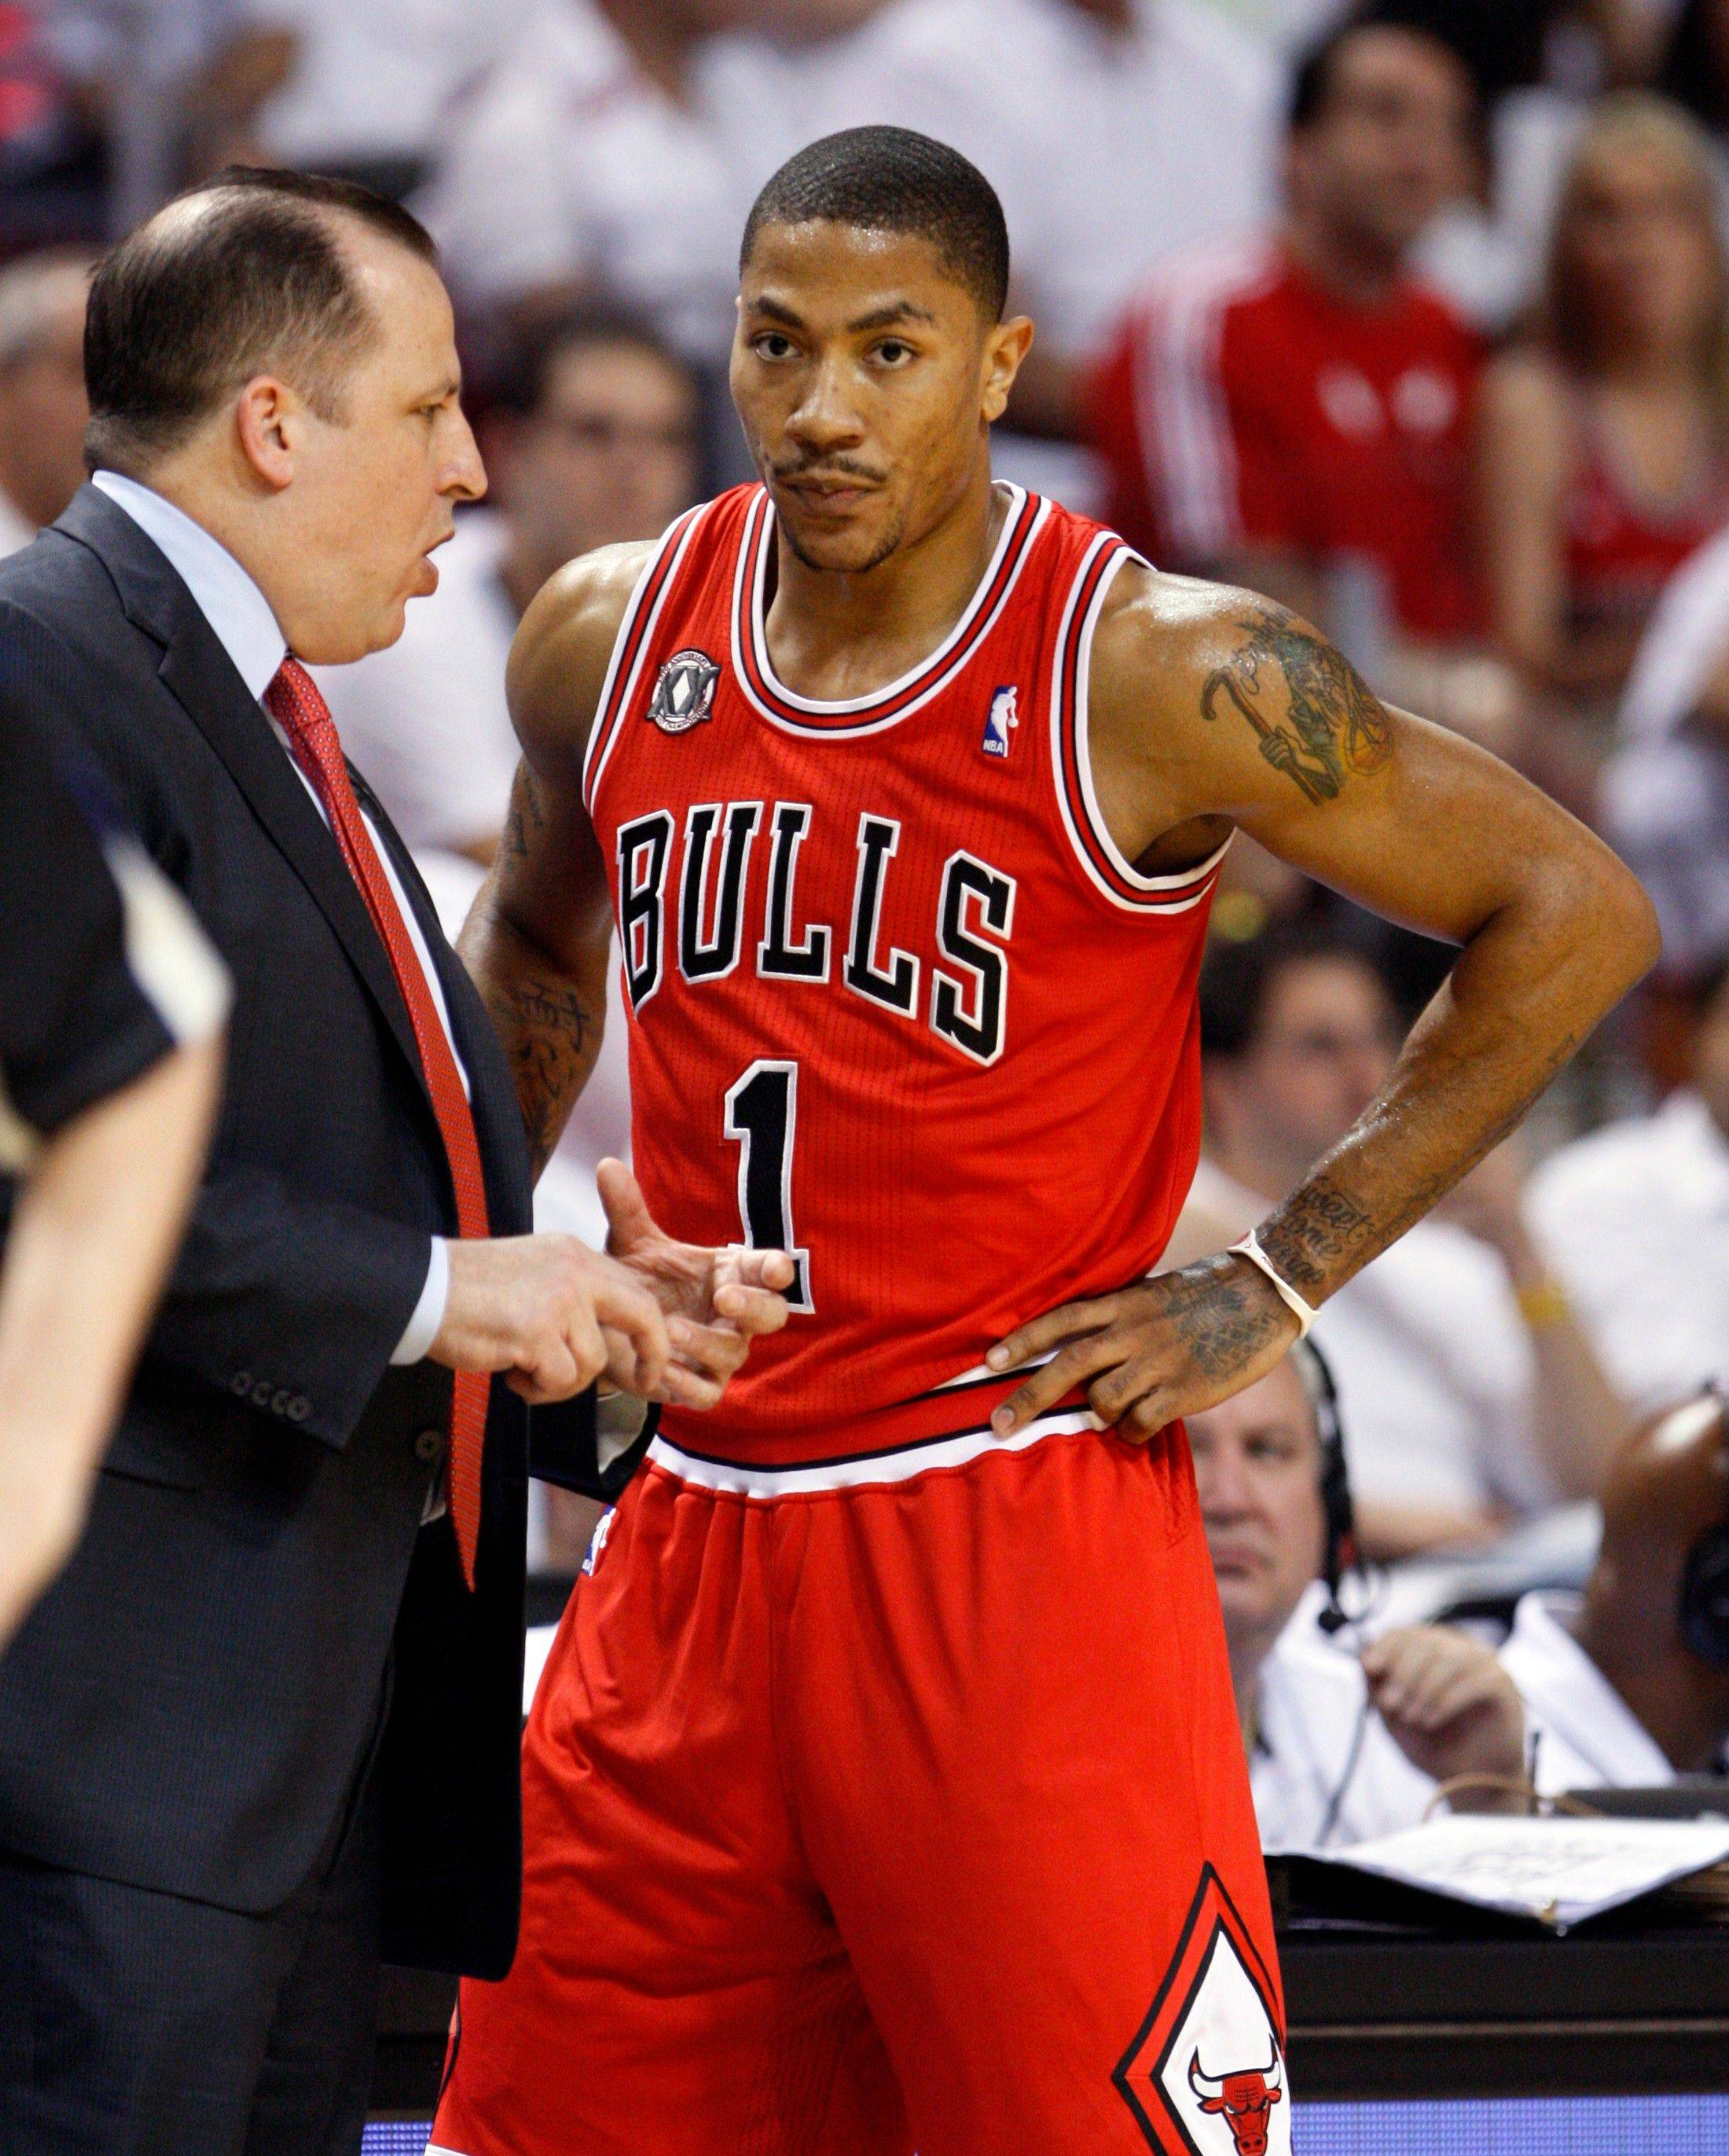 Chicago Bull's head coach Tom Thibodeau speaks to Derrick Rose during the first half of Game 3 of the NBA Eastern Conference finals basketball series against the Miami Heat in Miami, Sunday, May 22, 2011.